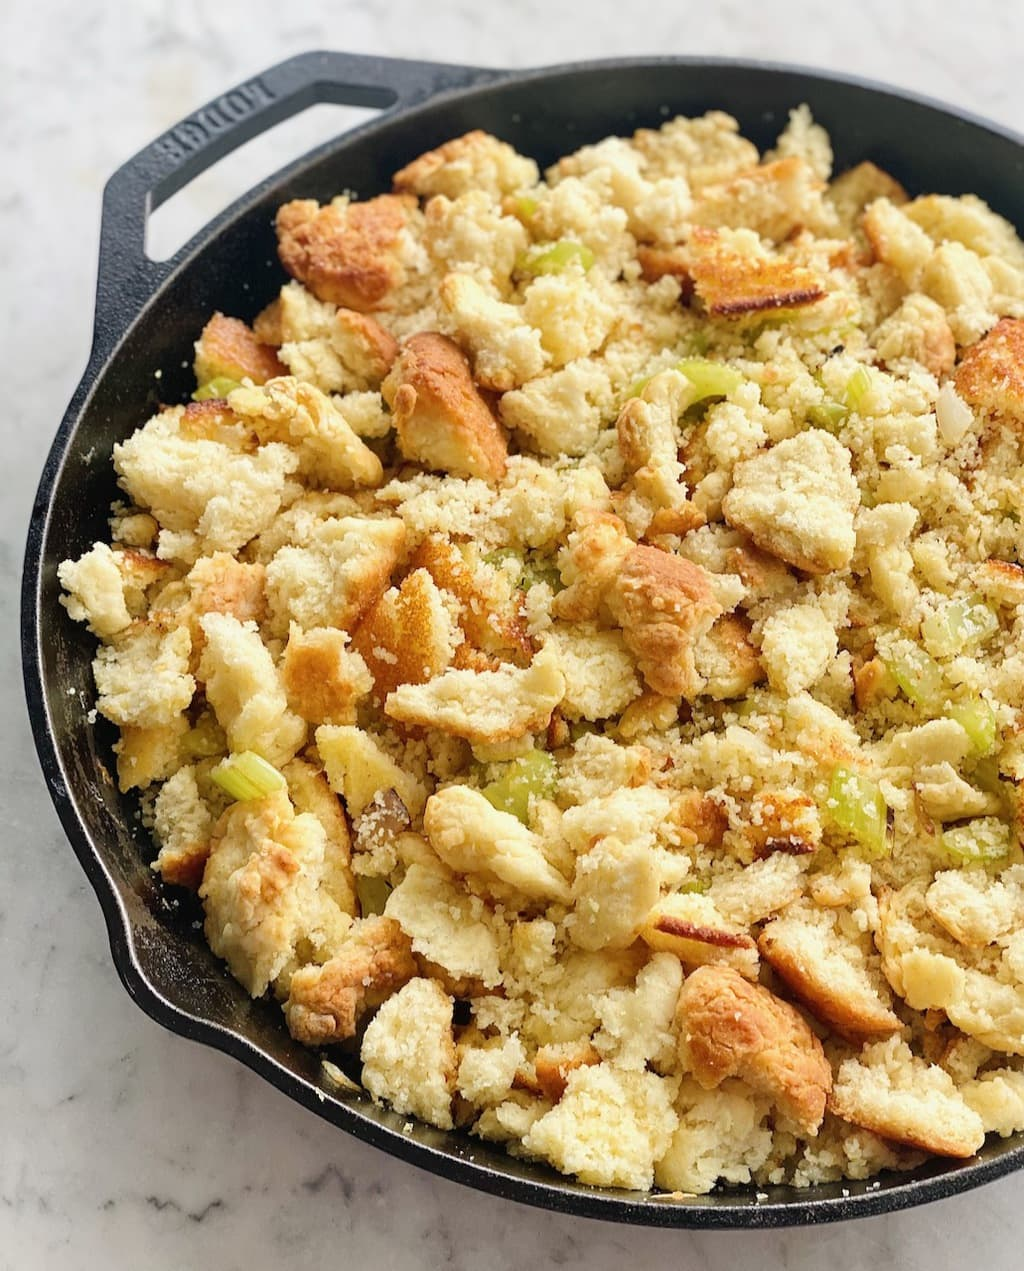 crumbles of cornbread and biscuits mixed with celery and onions.